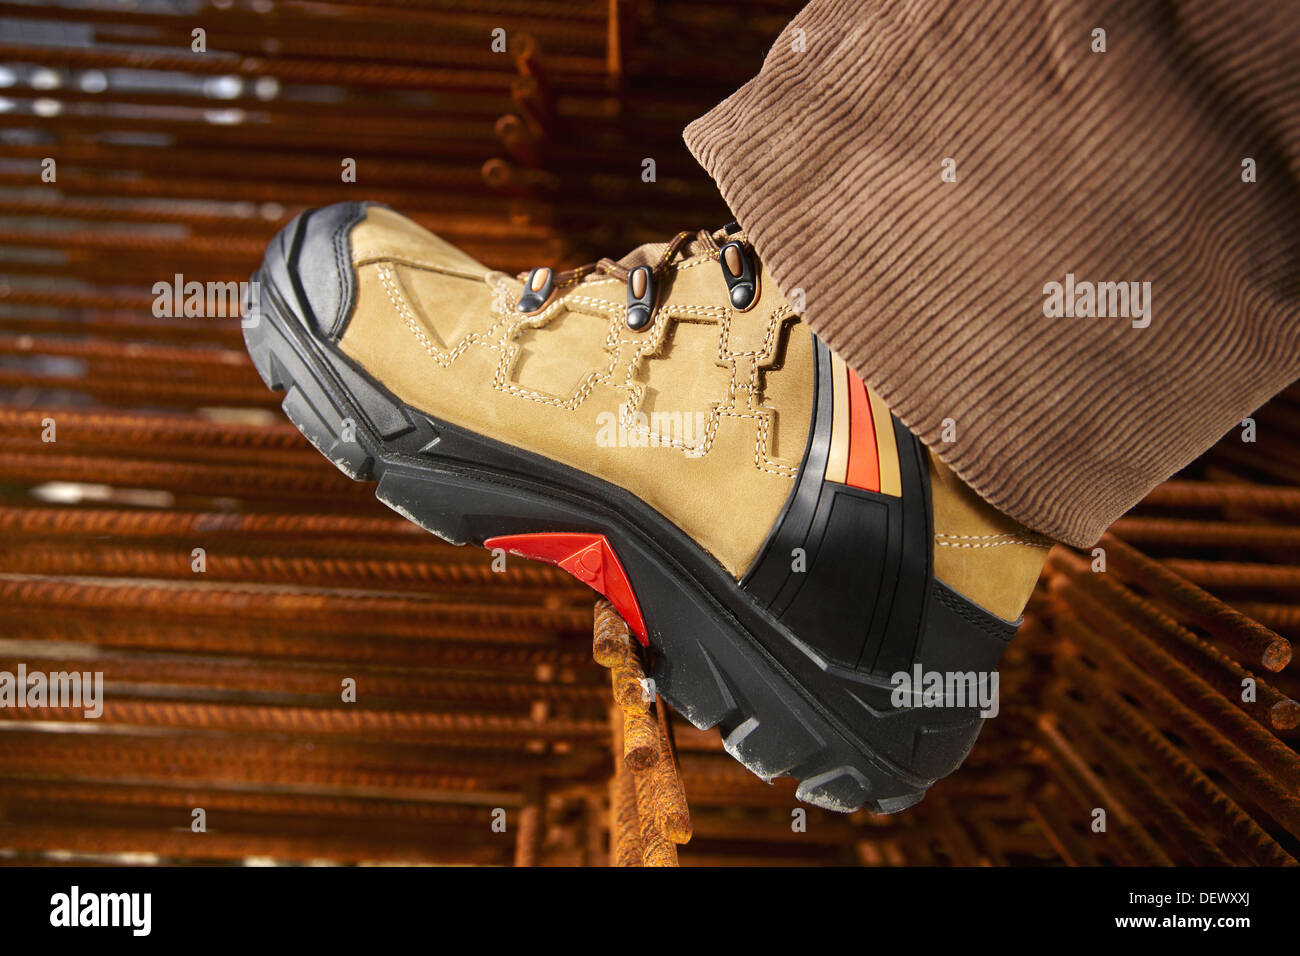 Safety boot, corrugated iron for formwork, housing construction - Stock Image